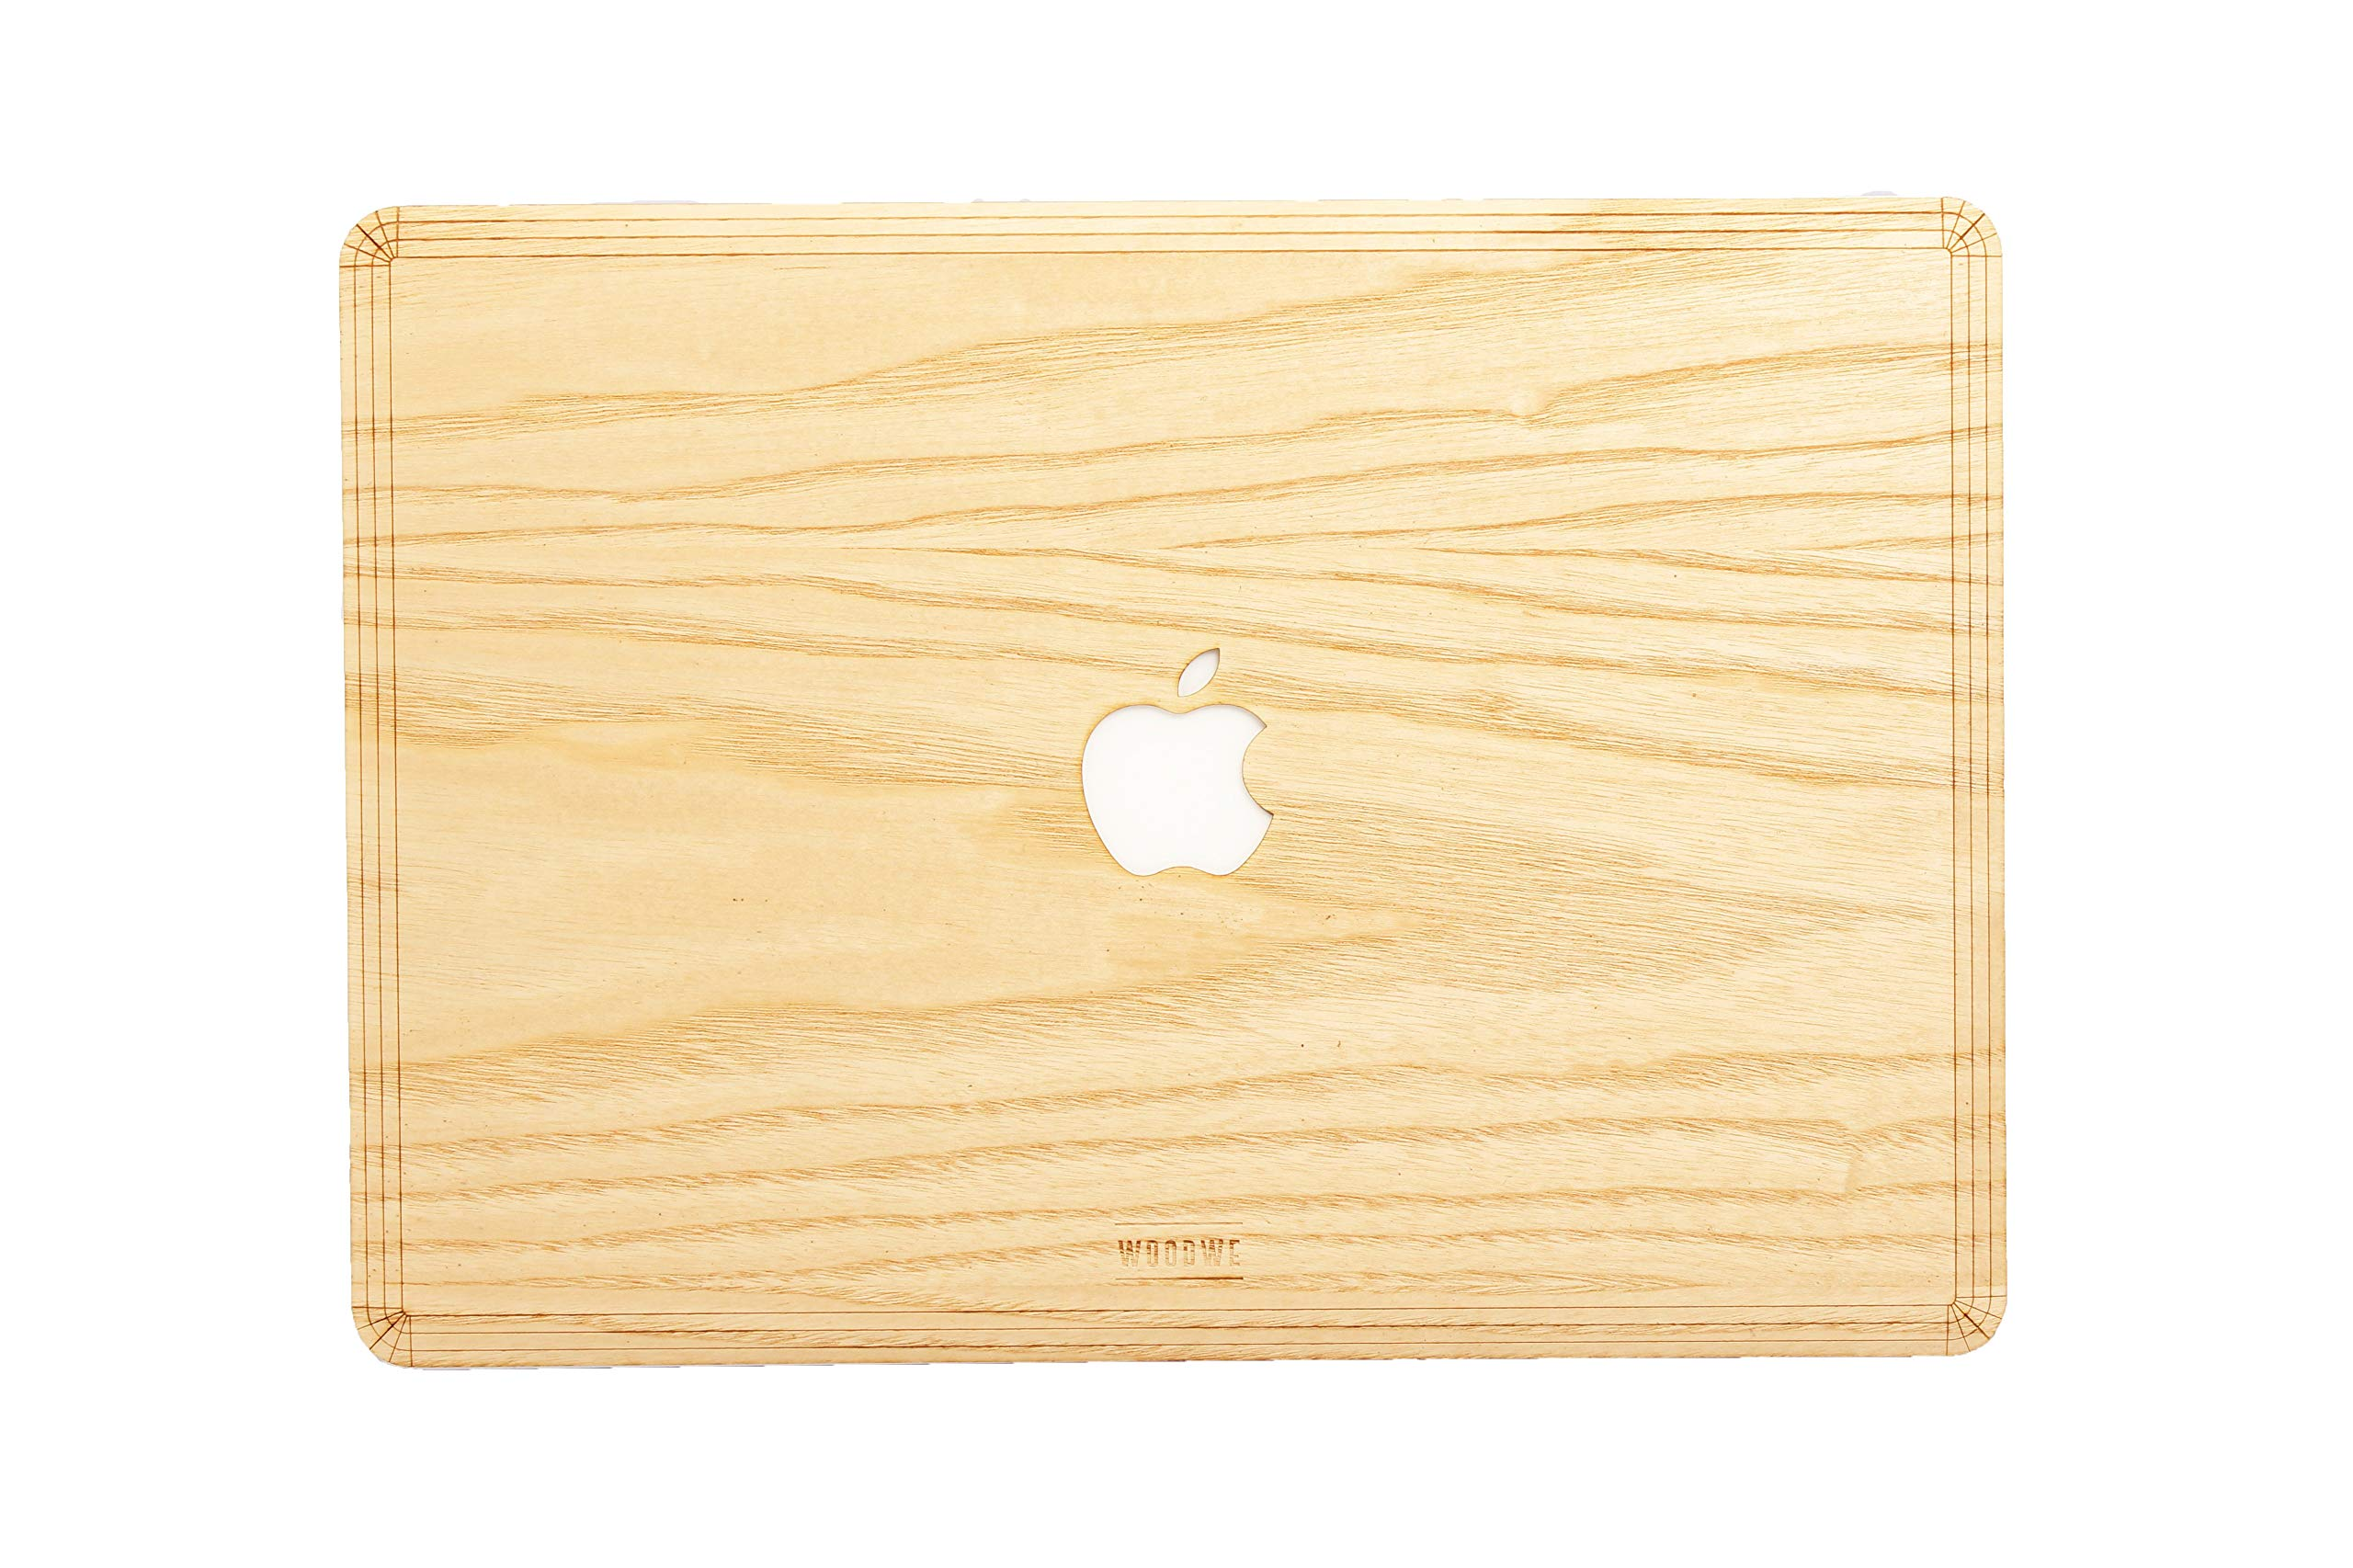 WOODWE Real Wood MacBook Skin Sticker Decal for Mac pro 15 inch Retina Display | Model: A1398; Mid 2012 – Mid 2015 | Genuine & Natural ASH Wood | TOP&Bottom Cover